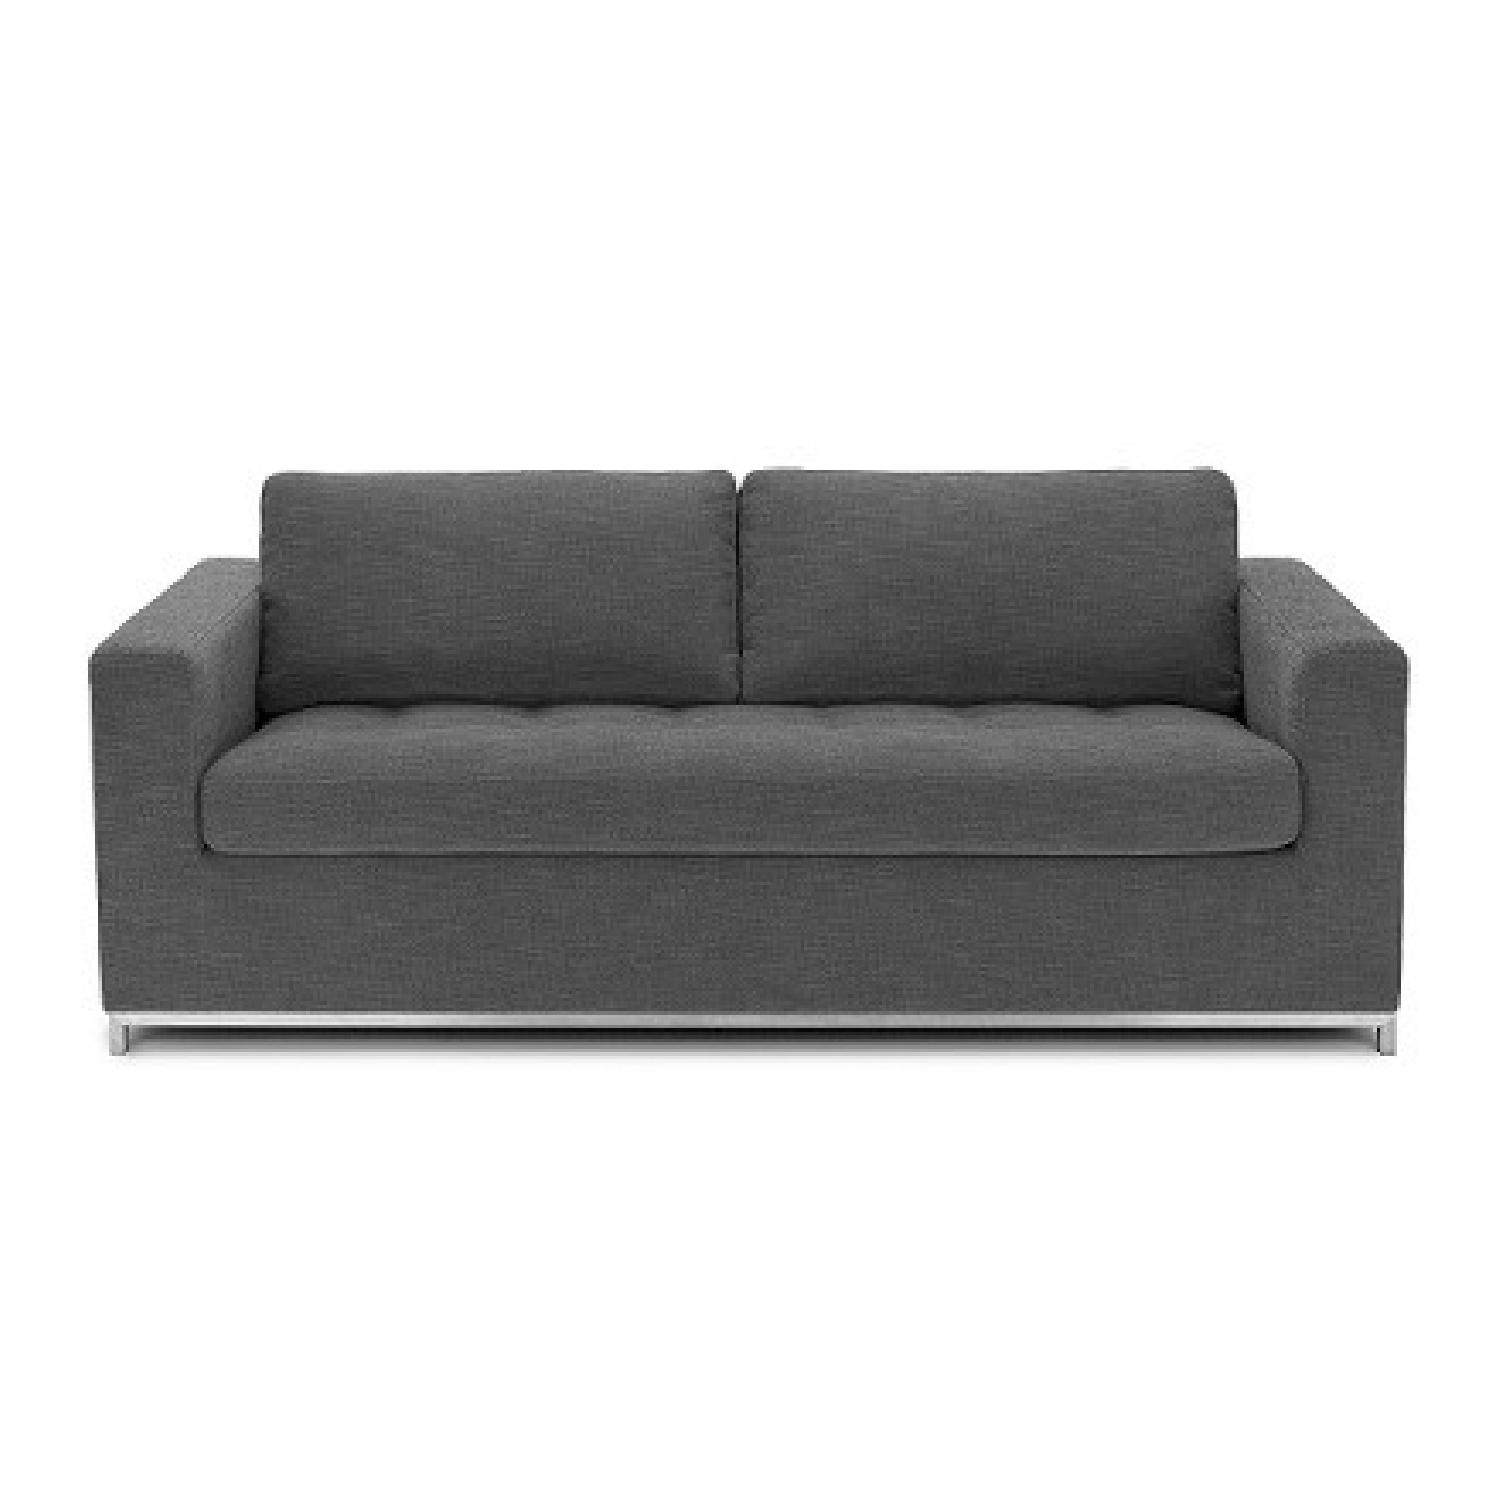 Article Pull Out Sofa (Twilight Grey) - image-6